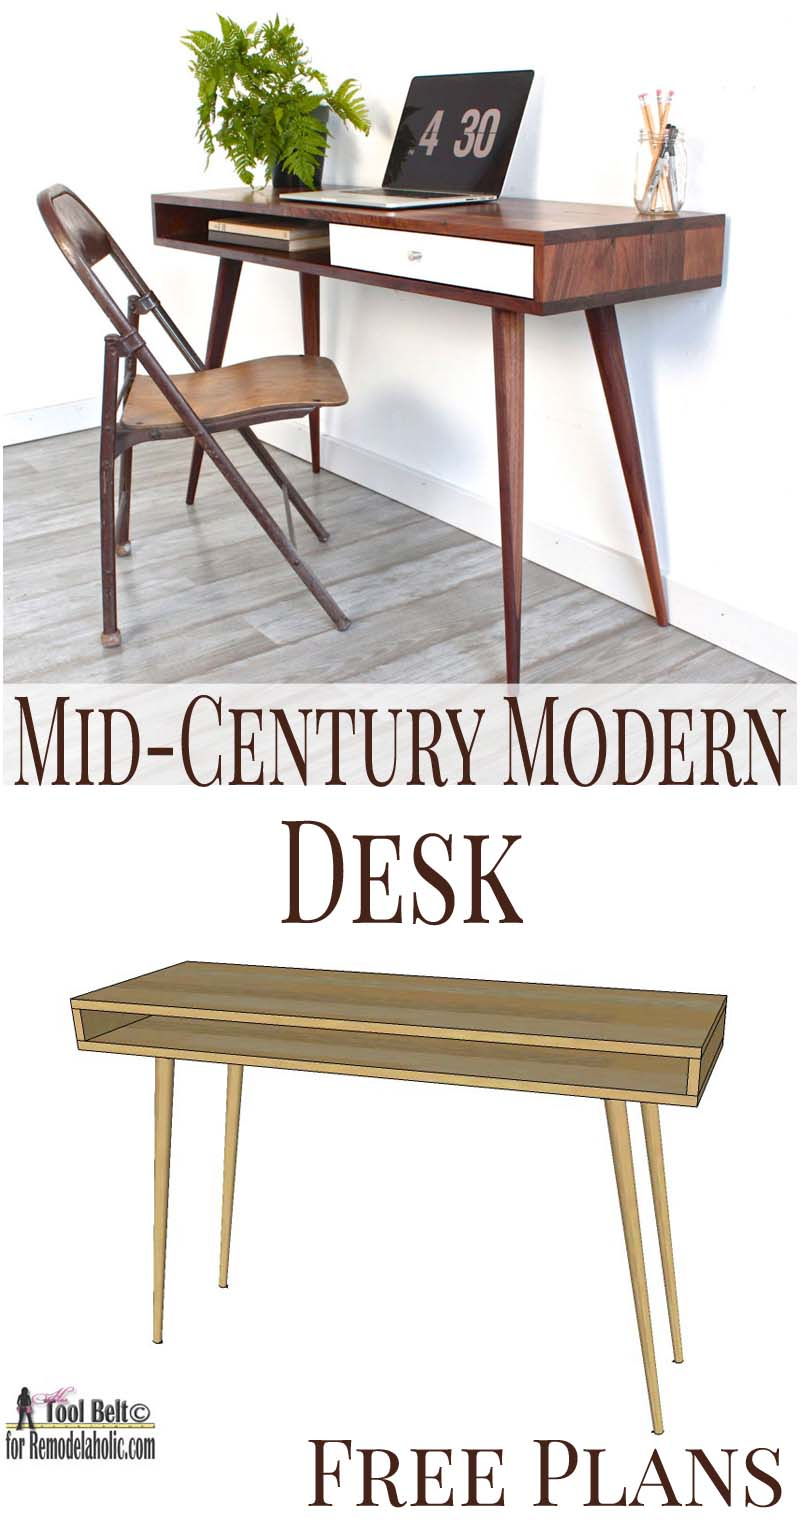 Download mid century modern desk plans plans free for Mid century modern plans